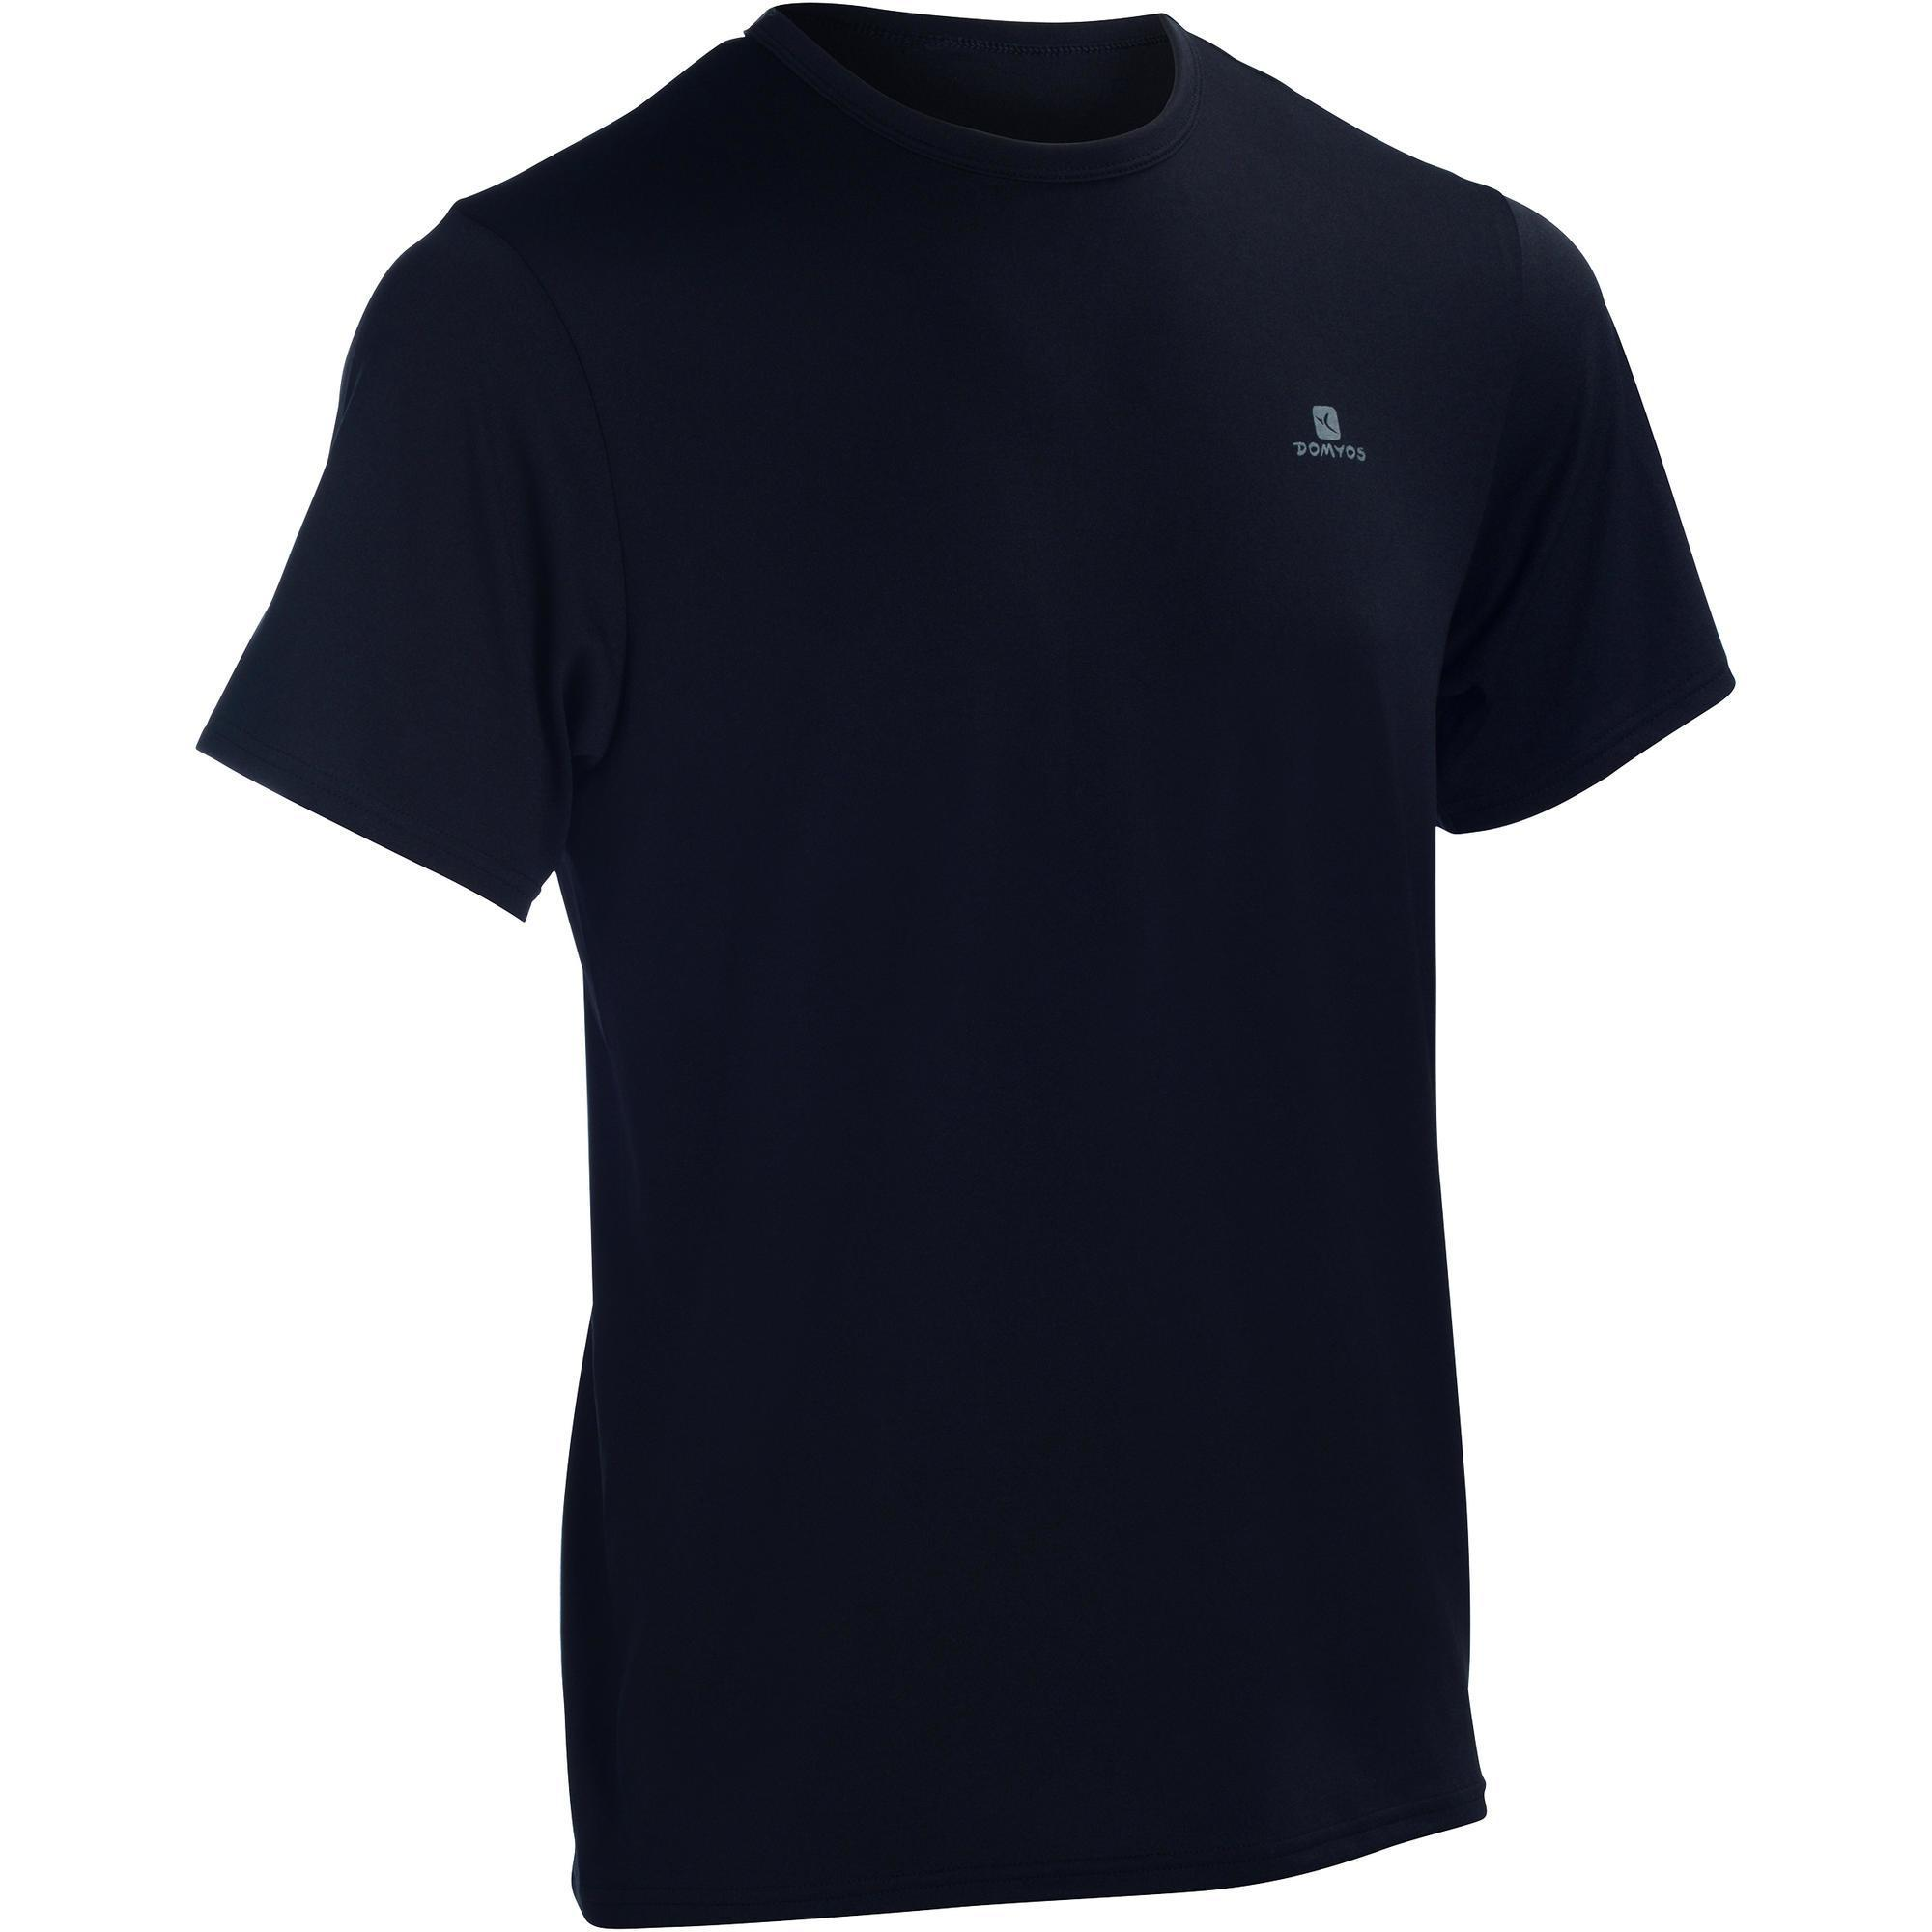 t shirt uomo cardio fitness energy nera domyos by decathlon. Black Bedroom Furniture Sets. Home Design Ideas